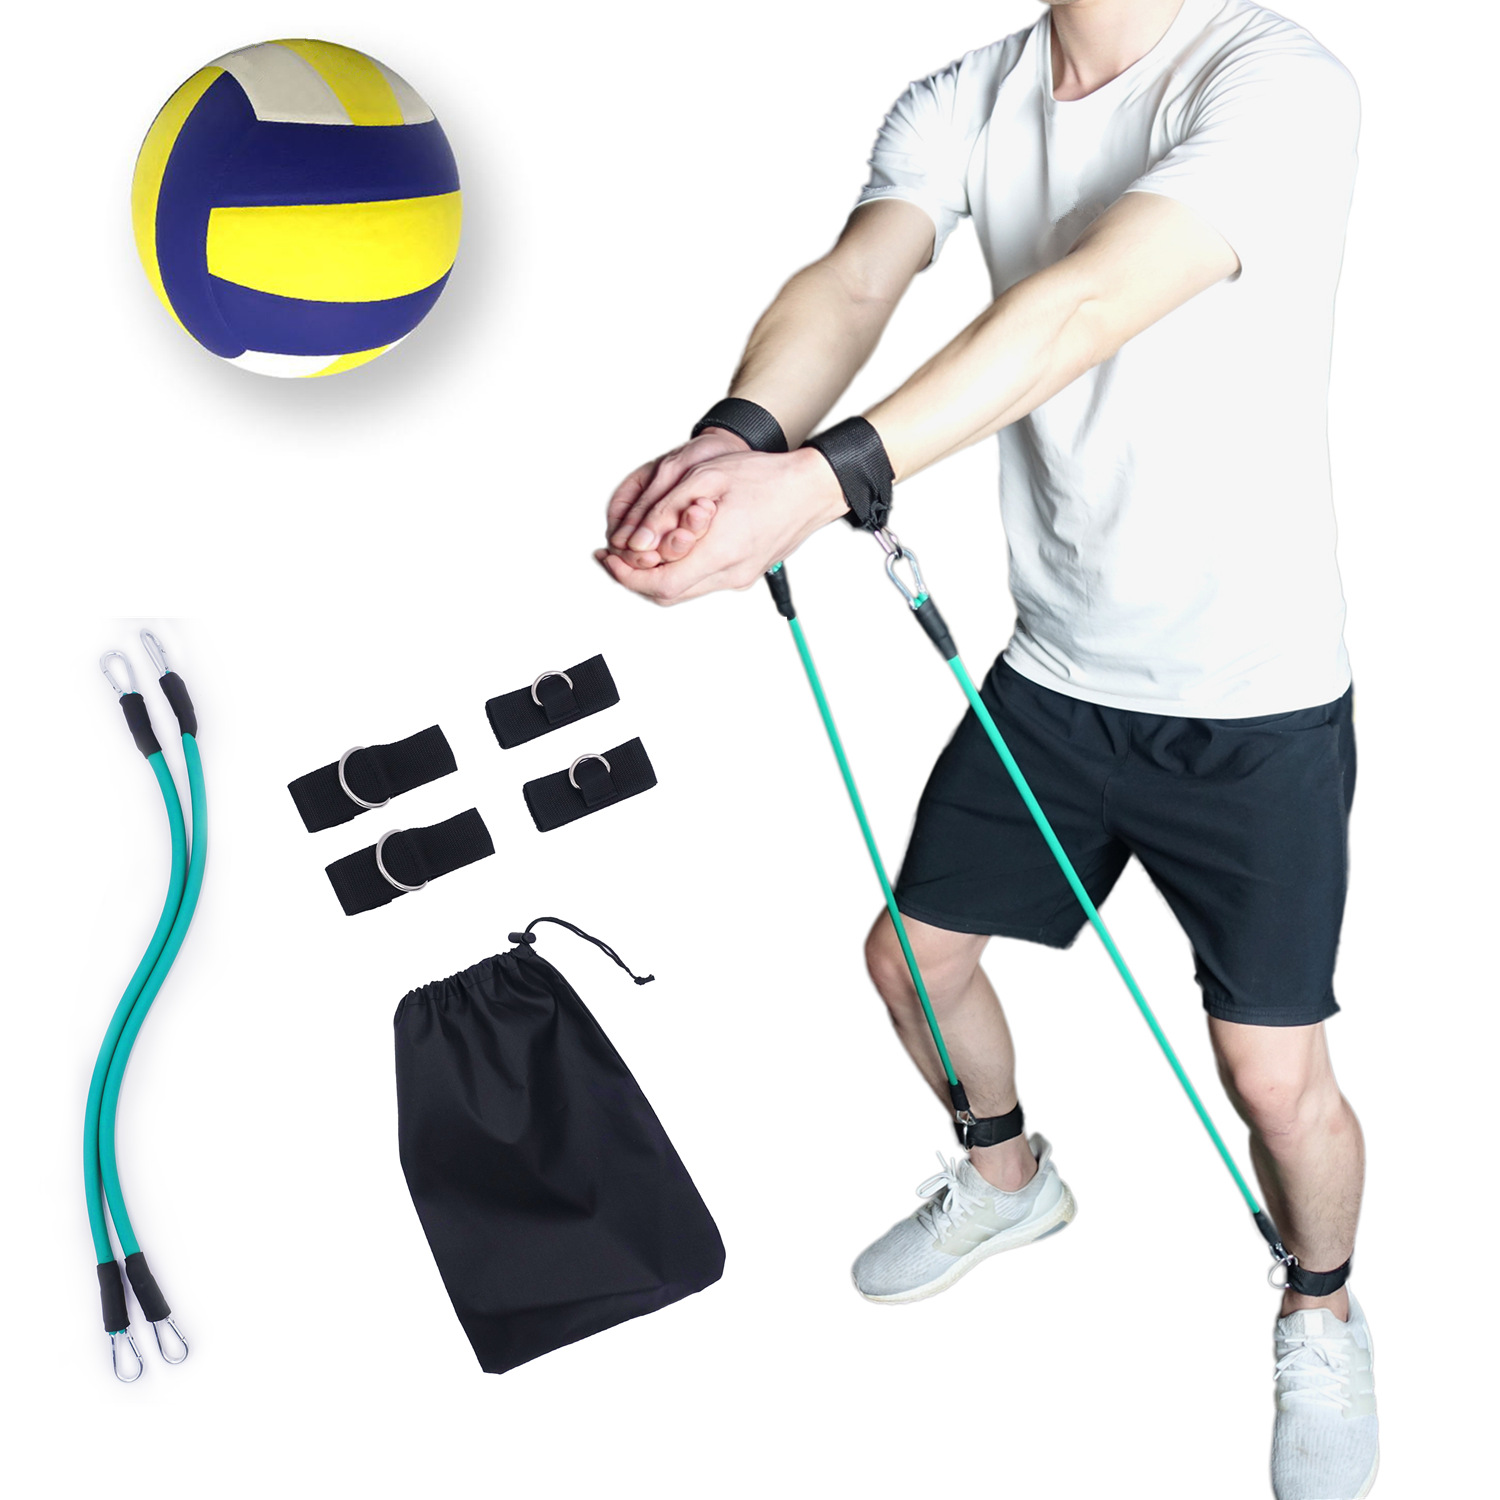 Volleyball Training Accessories Aid Resistance Bands Practice For Tosses Arm Swings To Prevent Excessive Upward Arm Movement